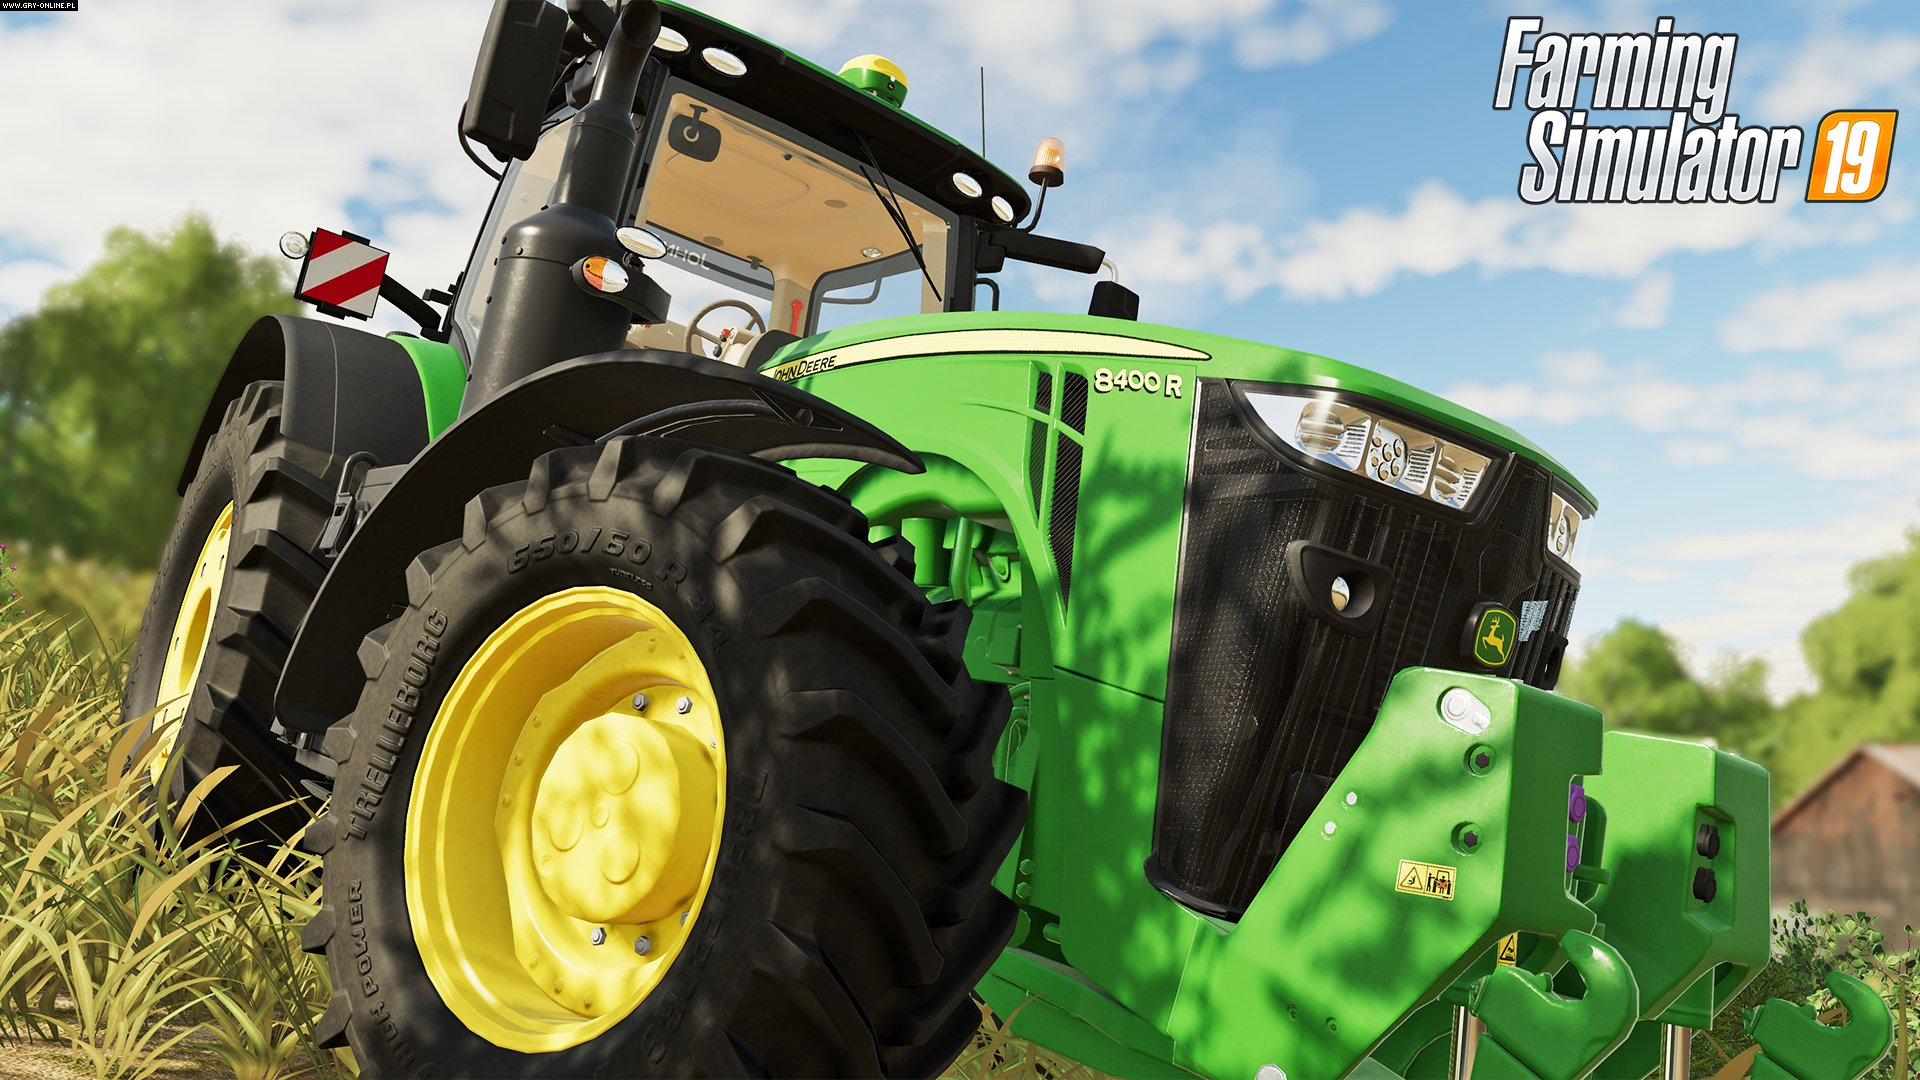 Farming Simulator 19 PC, PS4, XONE Gry Screen 7/11, GIANTS Software, Focus Home Interactive